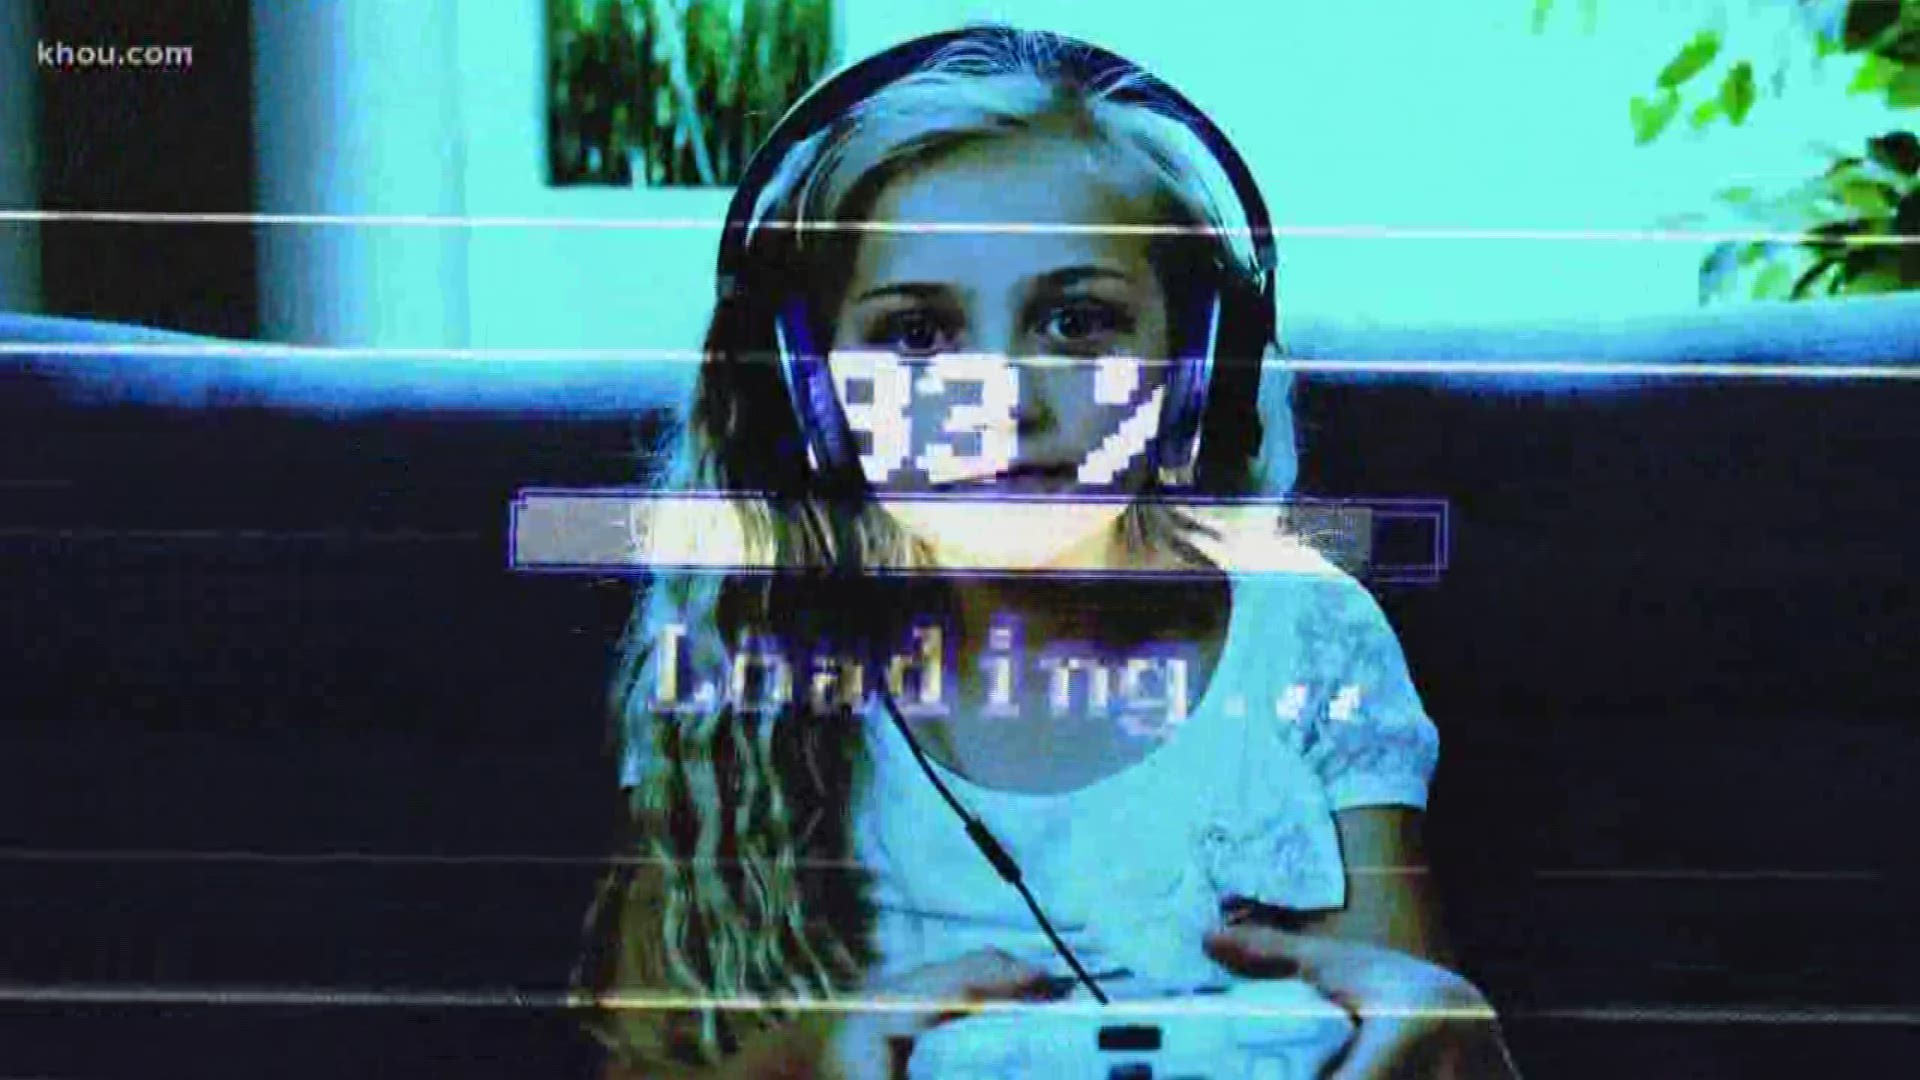 Pedophiles Are Using Video Games To Get To Your Kids Khou Com